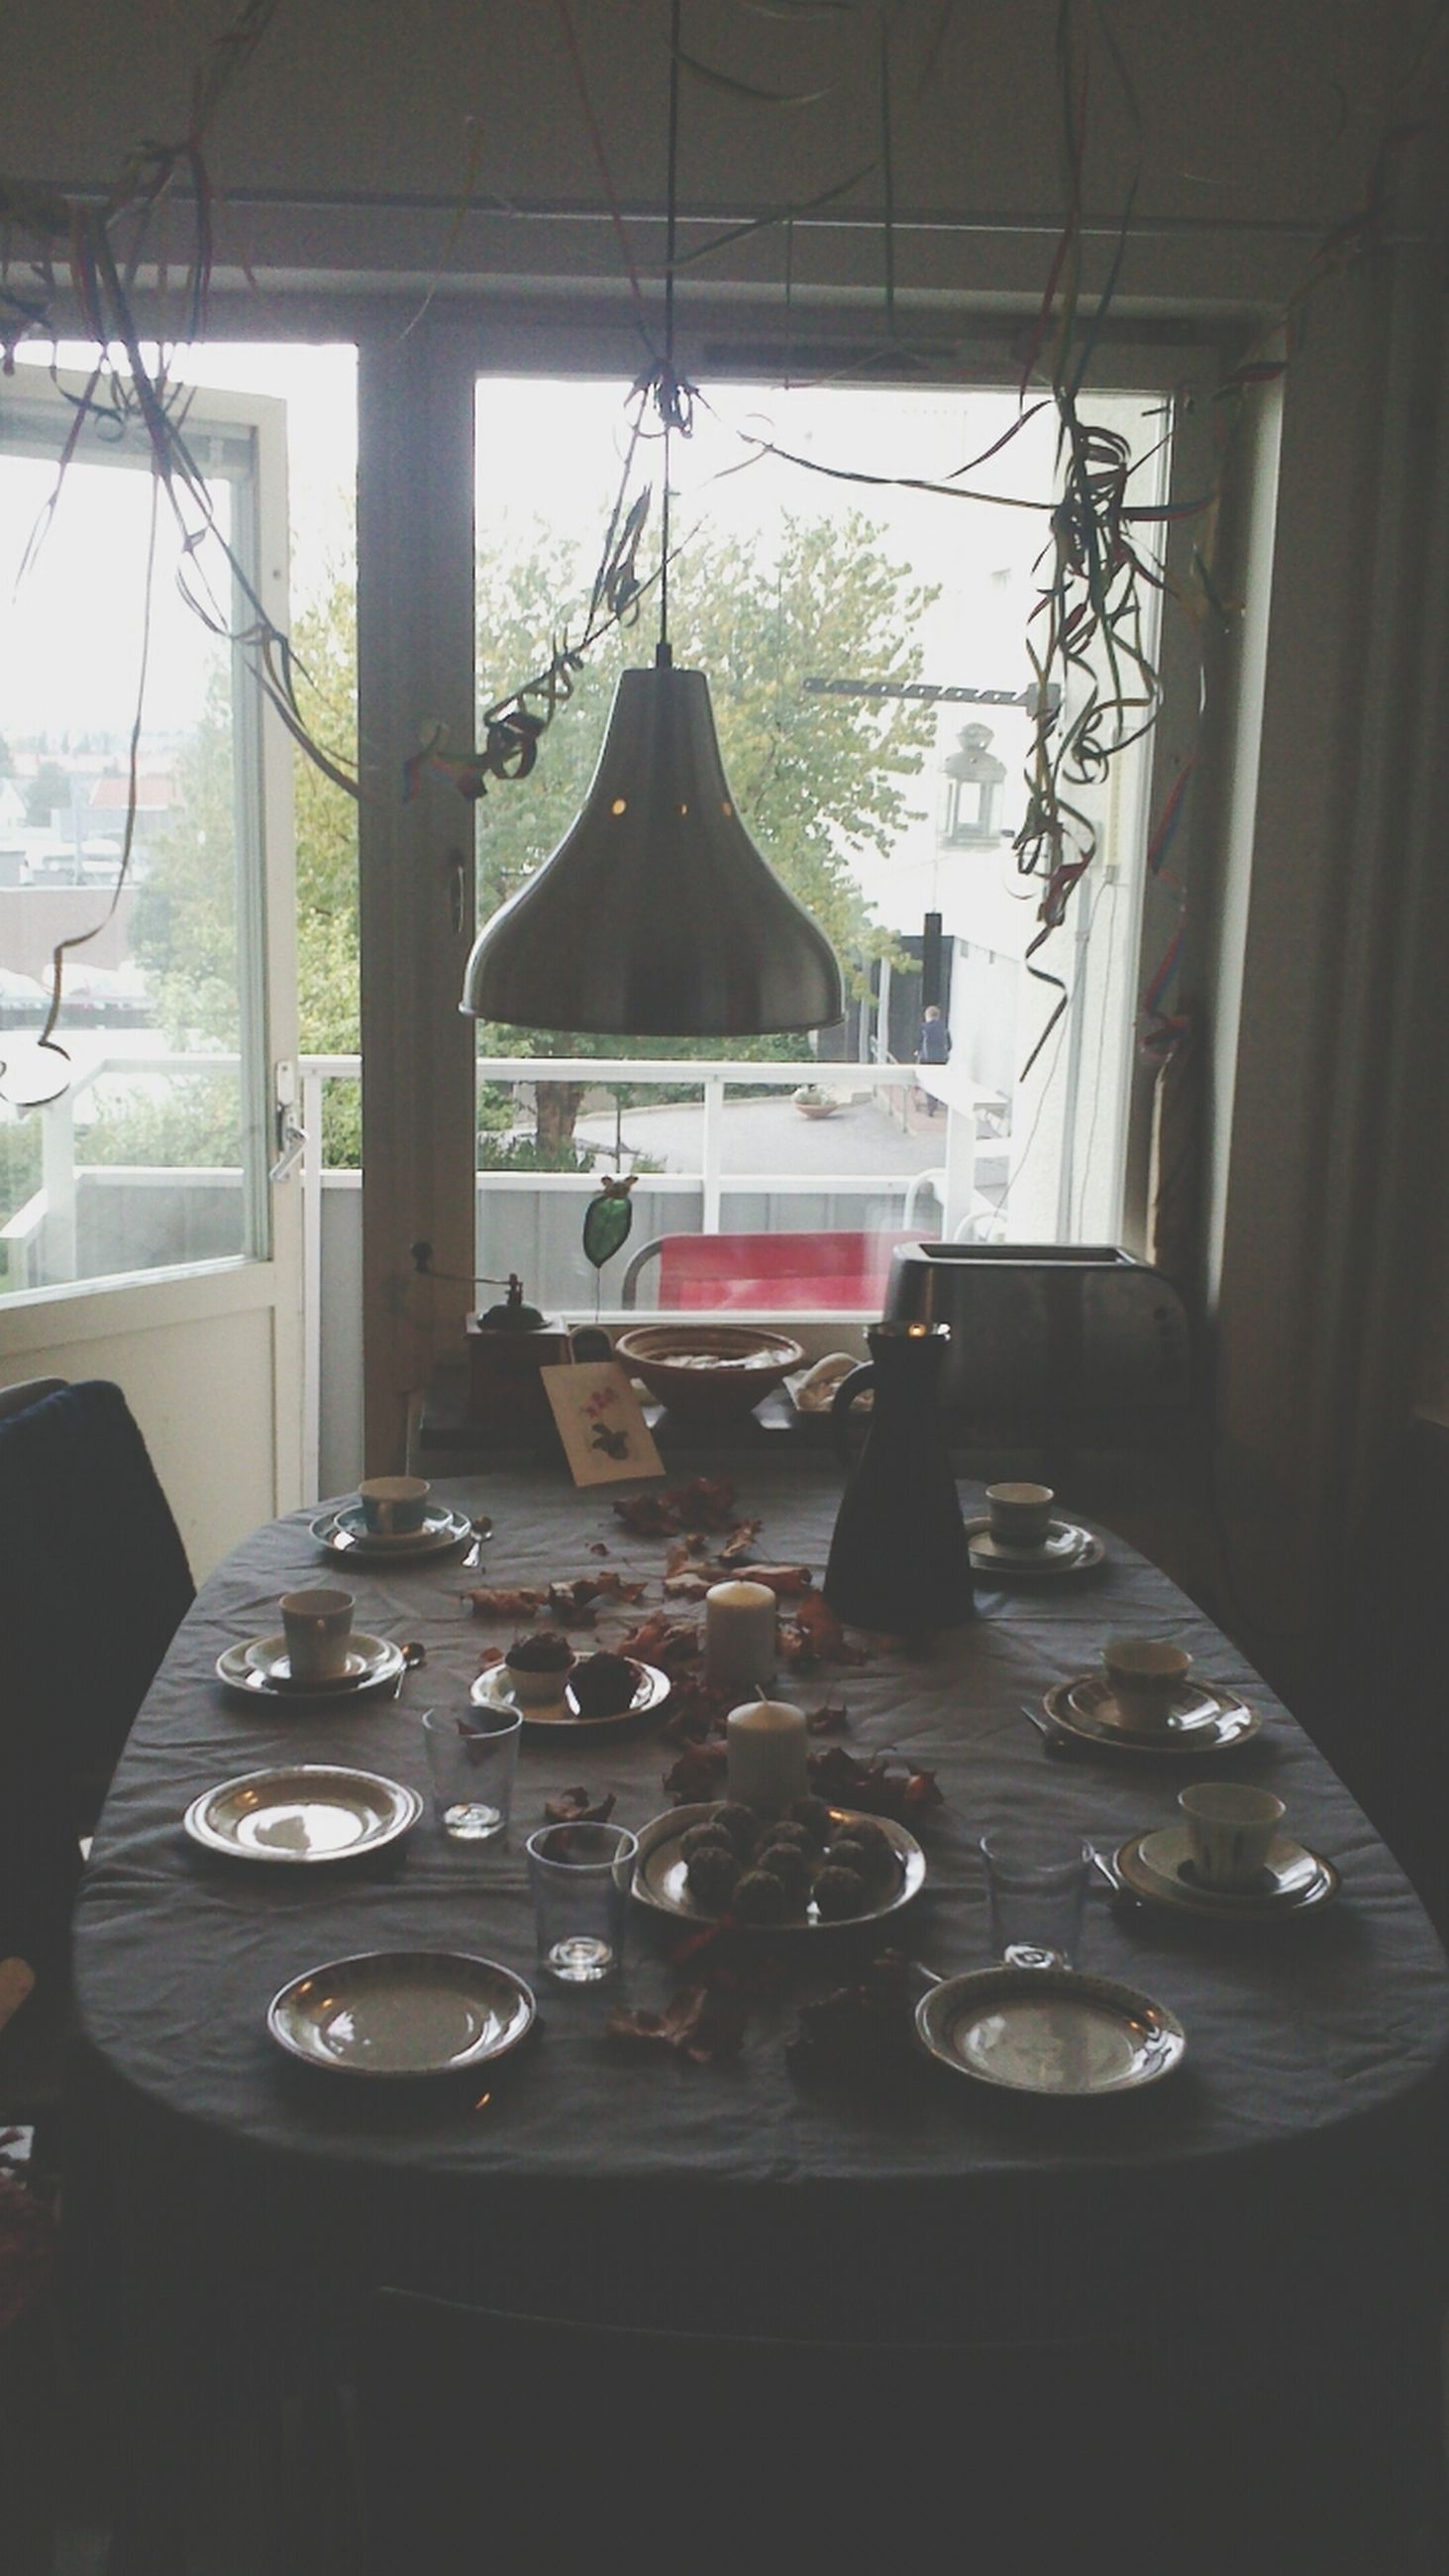 indoors, table, window, glass - material, food and drink, home interior, plate, transparent, restaurant, chair, drinking glass, absence, drink, dining table, day, refreshment, reflection, still life, food, glass